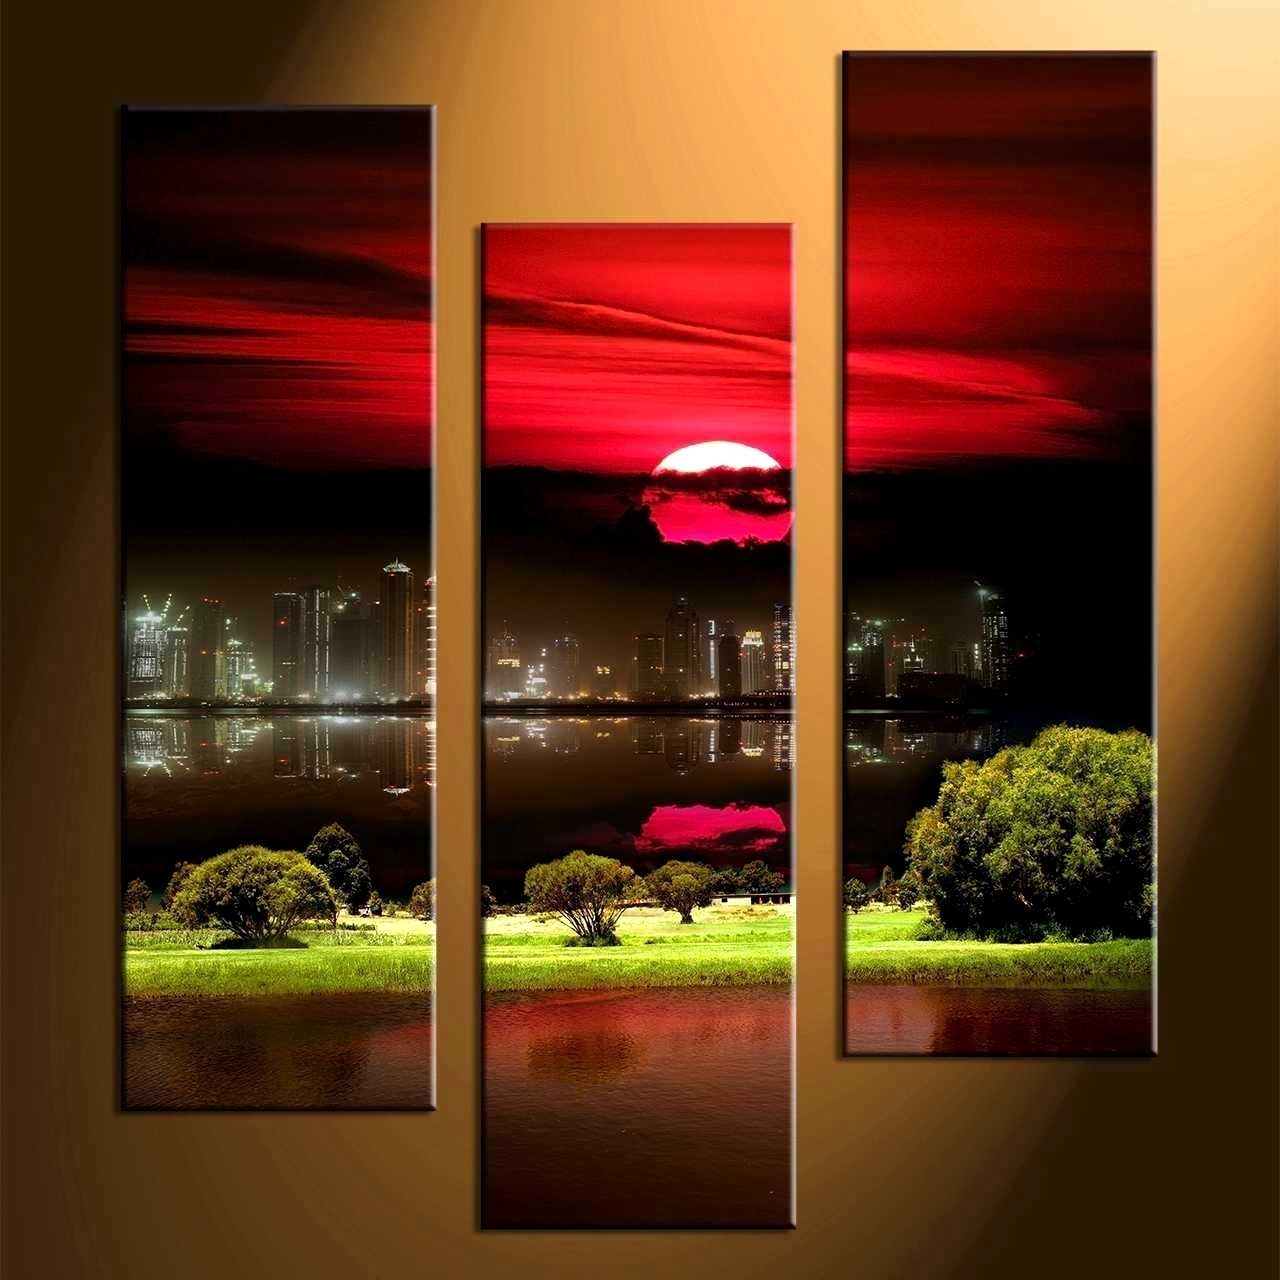 Delectable Remarkable Wall Decor Piece Canvas Art Black Artwork Home Within Red And Black Canvas Wall Art (View 13 of 20)